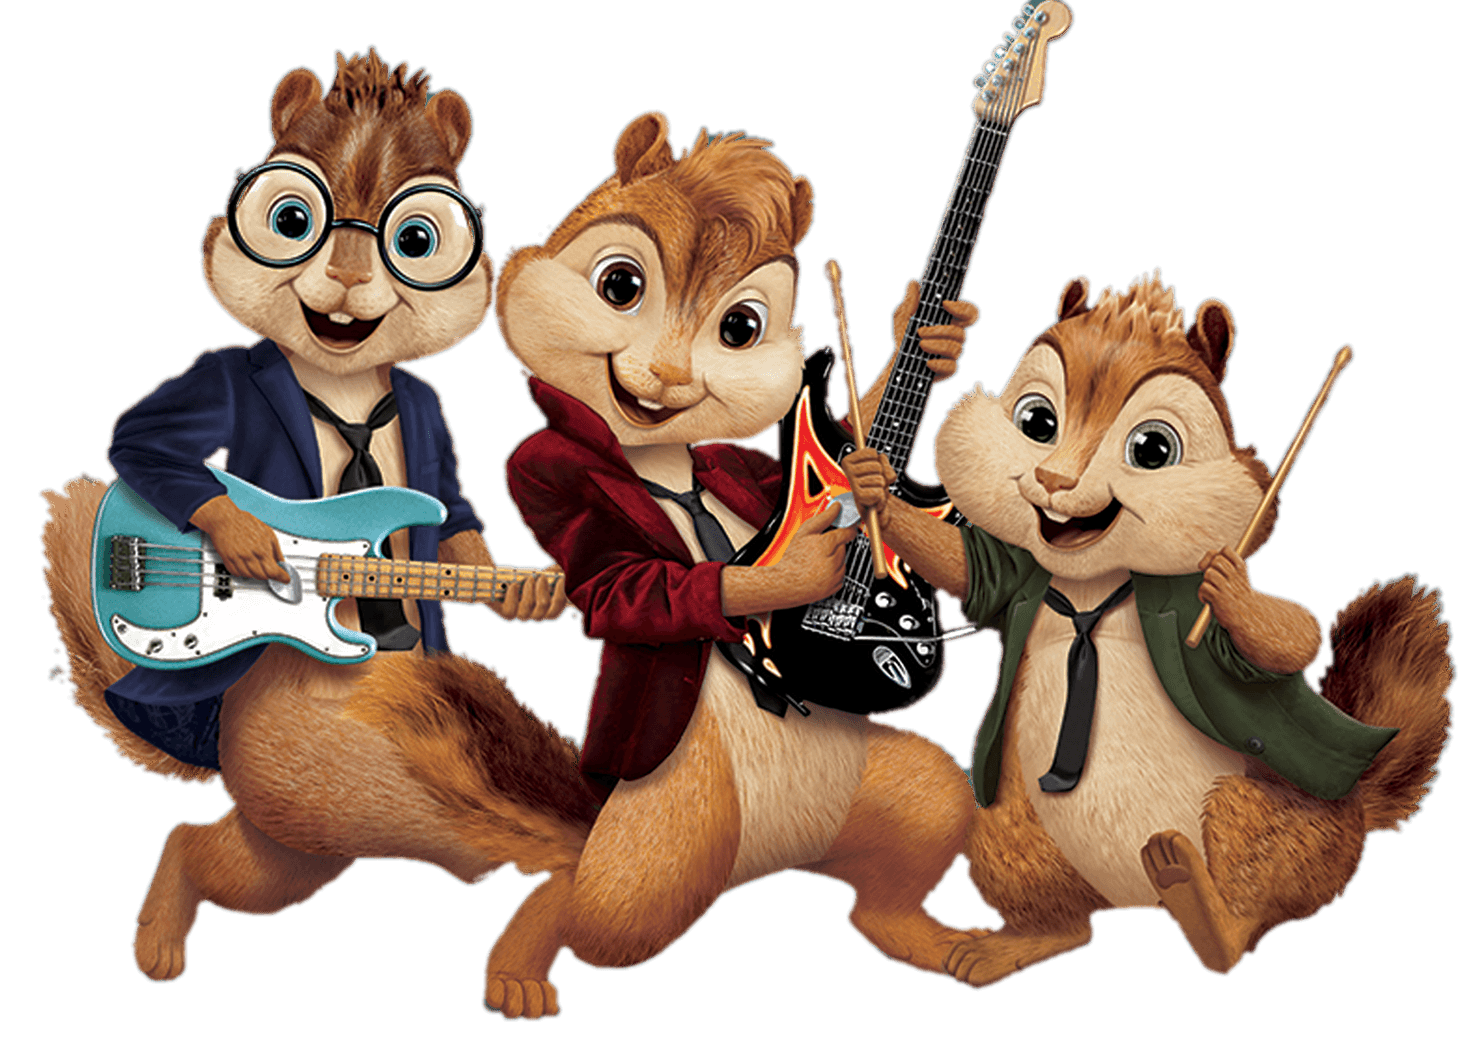 Alvin and the chipmunks football clipart svg Alvin and the Chipmunks Playing Music transparent PNG - StickPNG svg